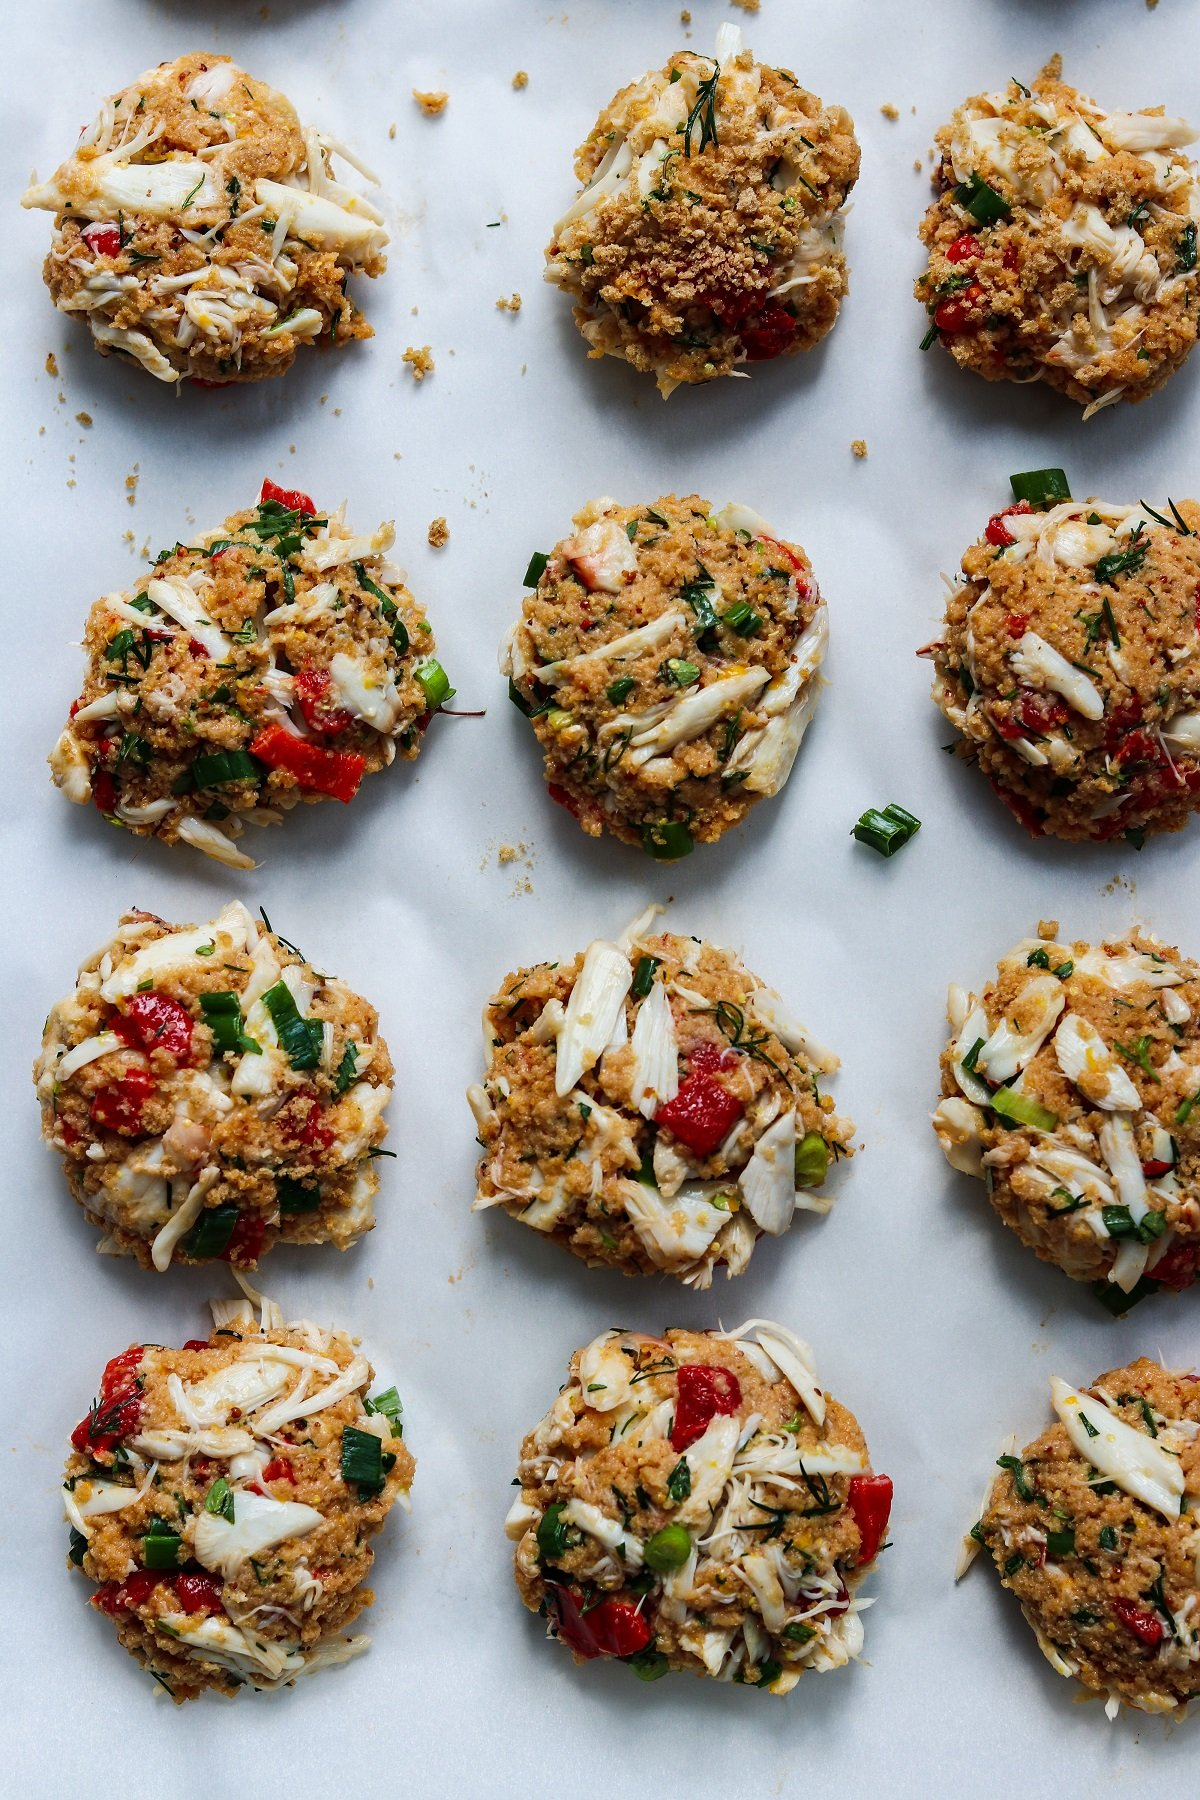 Crab cakes formed on baking sheet ready to refrigerate.